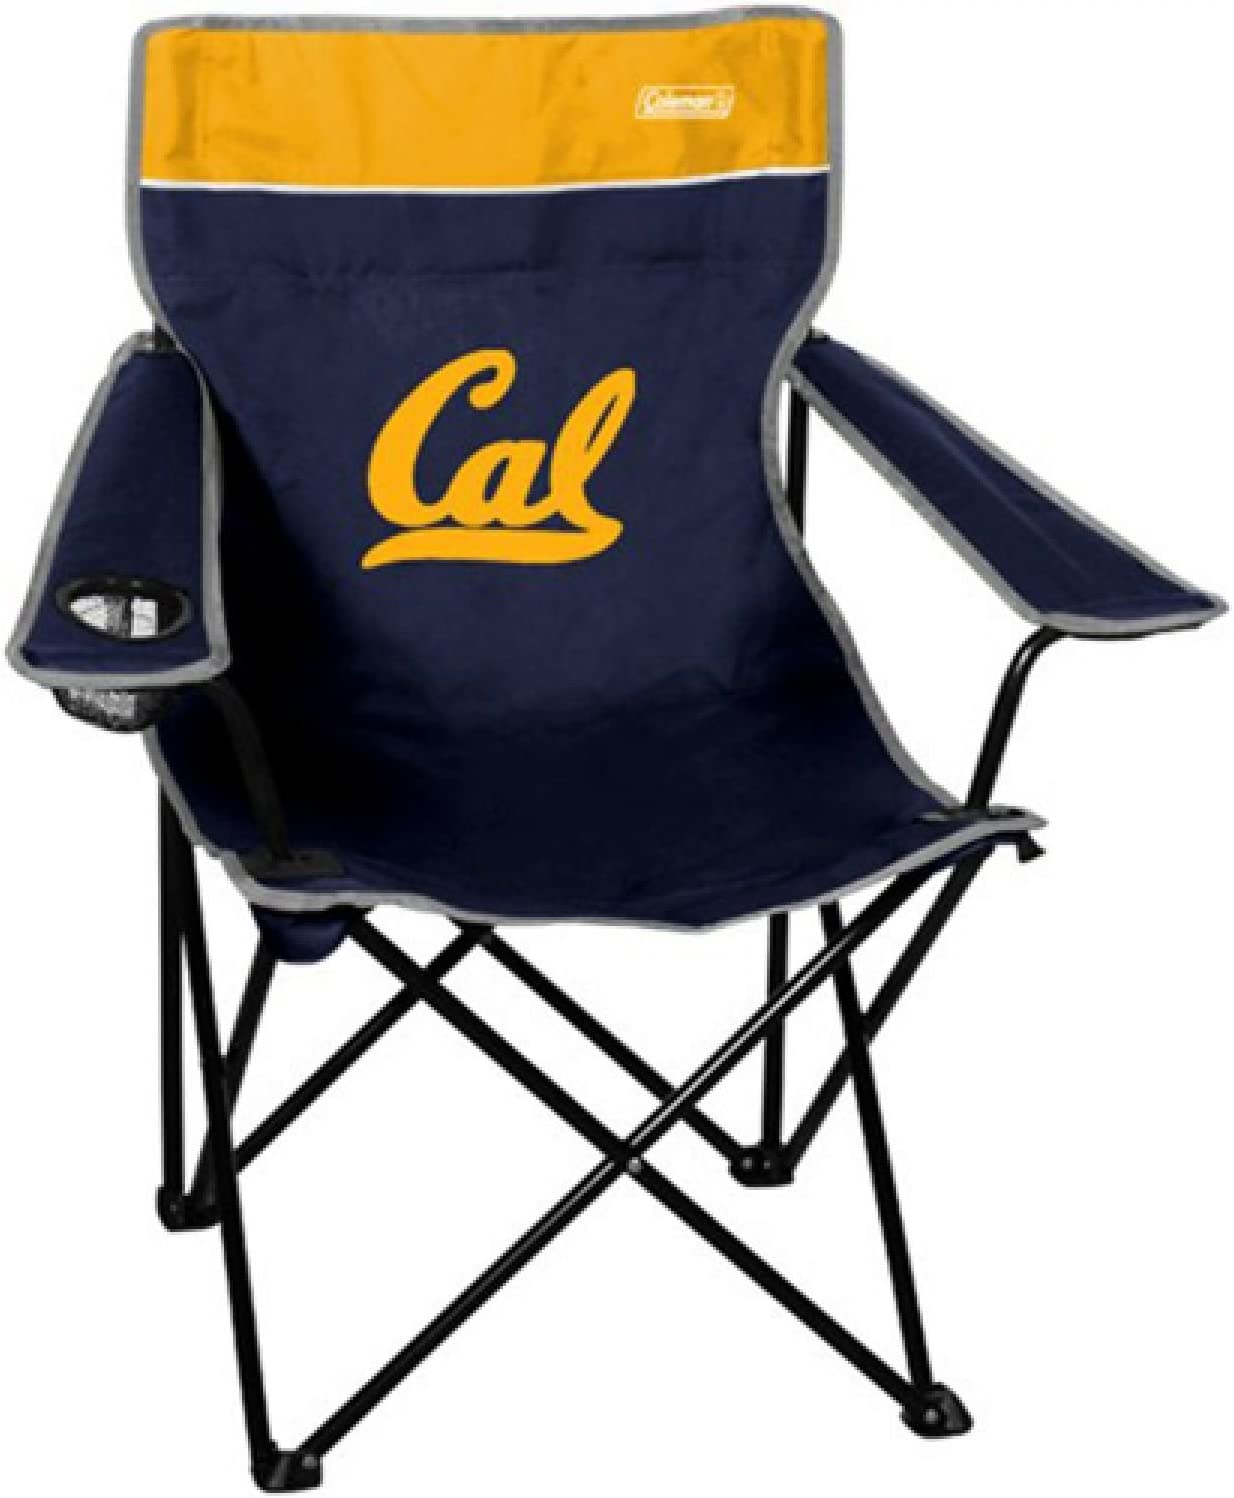 Coleman NCAA Luxury goods Folding Chair Carrying Case Max 82% OFF with